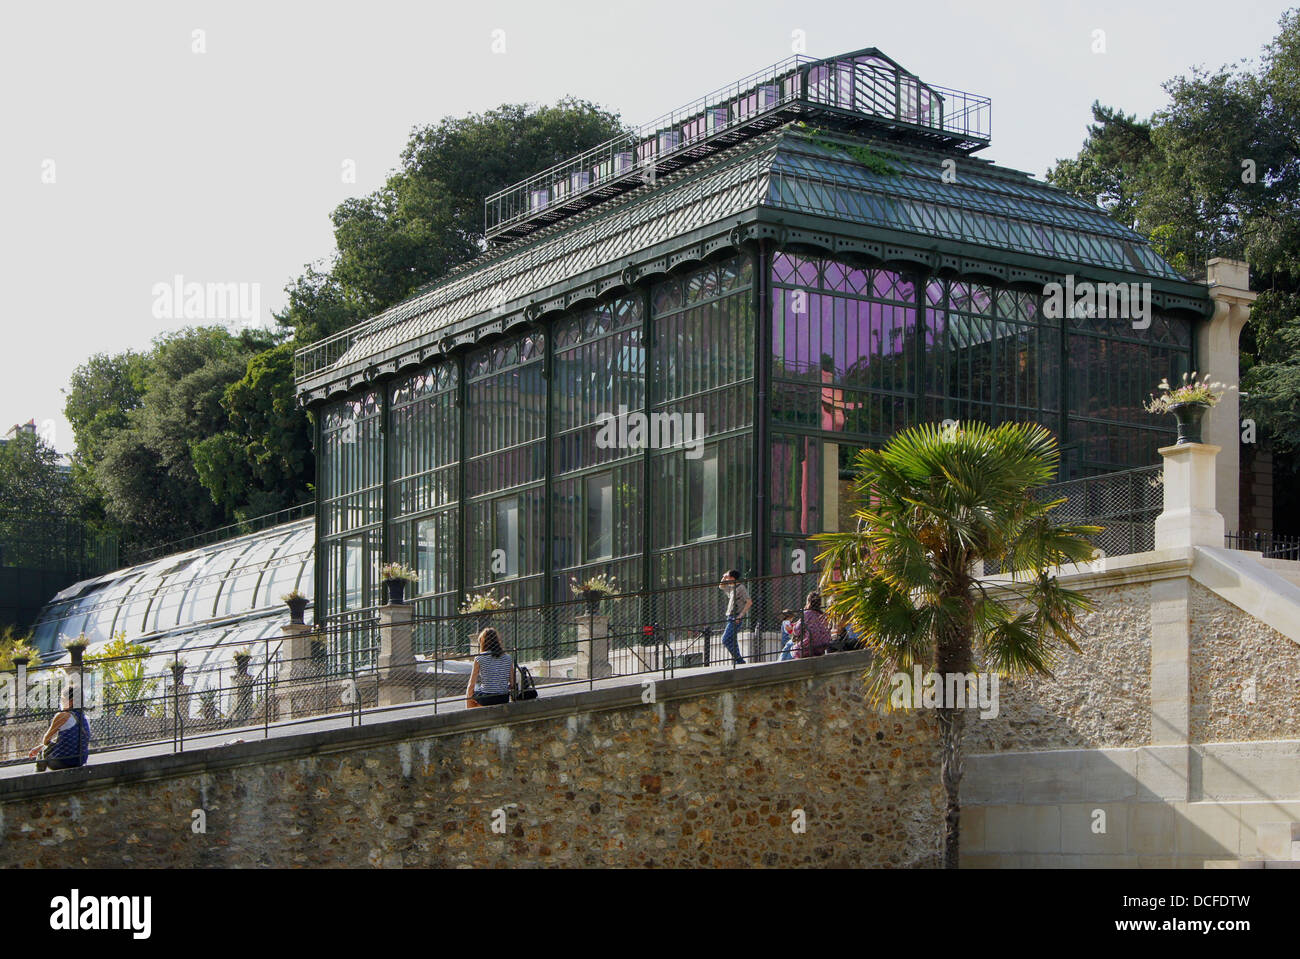 One of the oldest greenhouses in the world (1834-1836), restored 2010. Jardin des Plantes, Paris, France - Stock Image